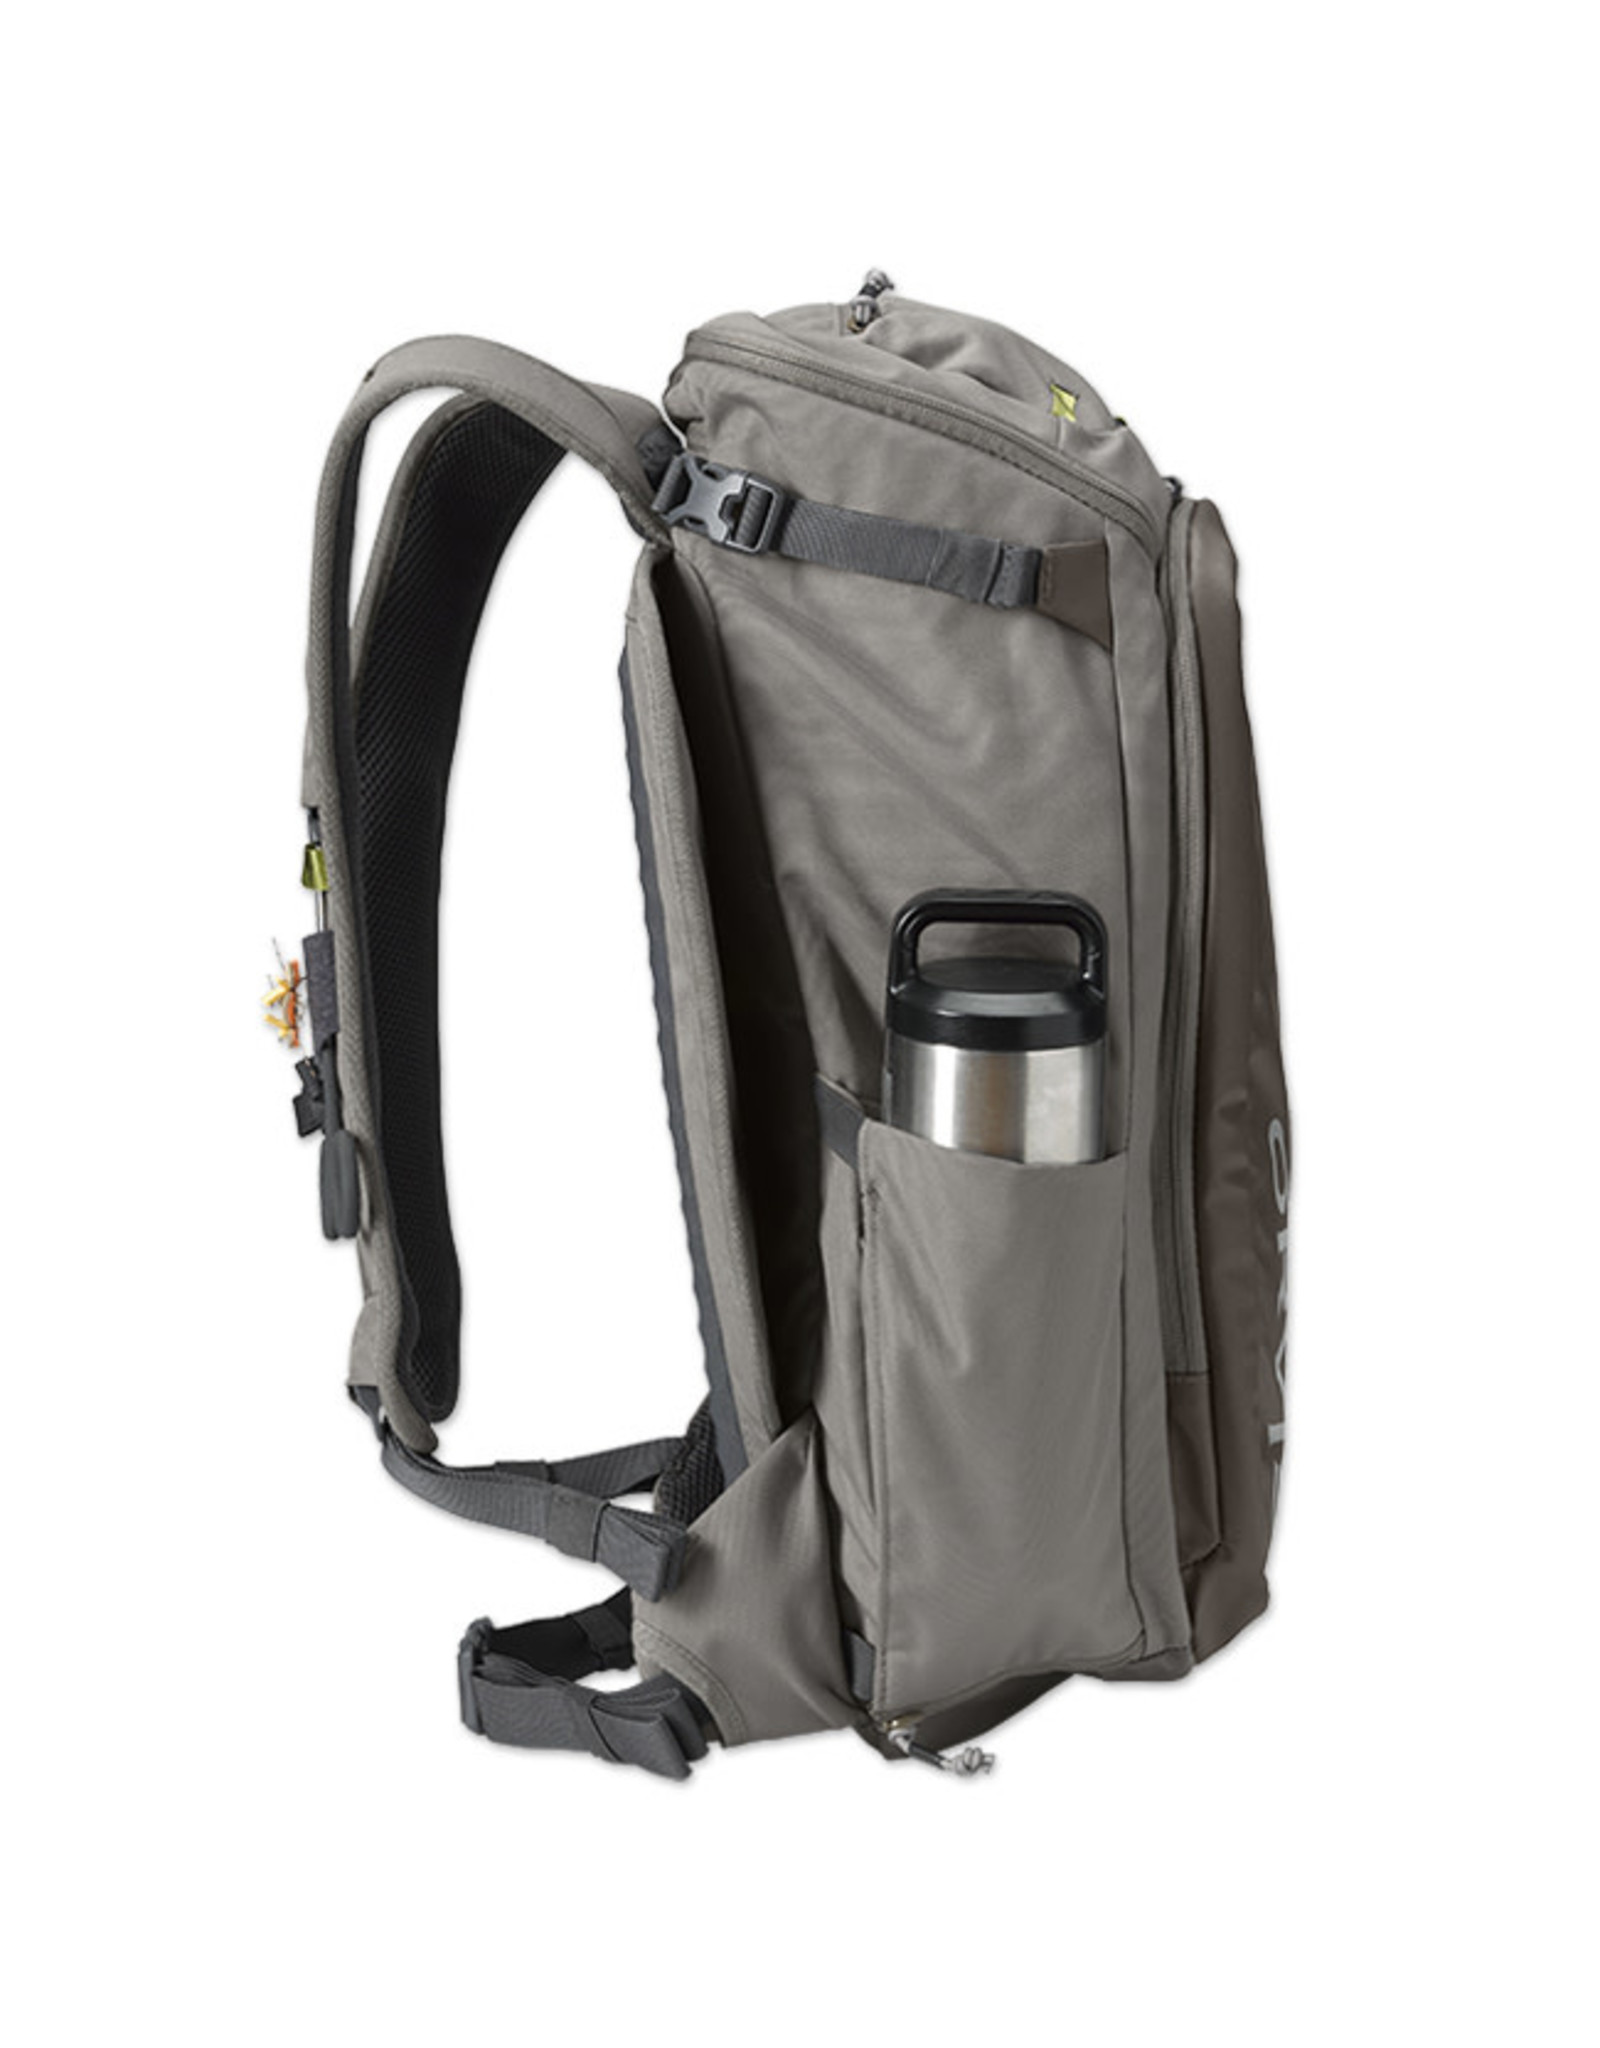 Orvis ORVIS Bug-Out Backpack